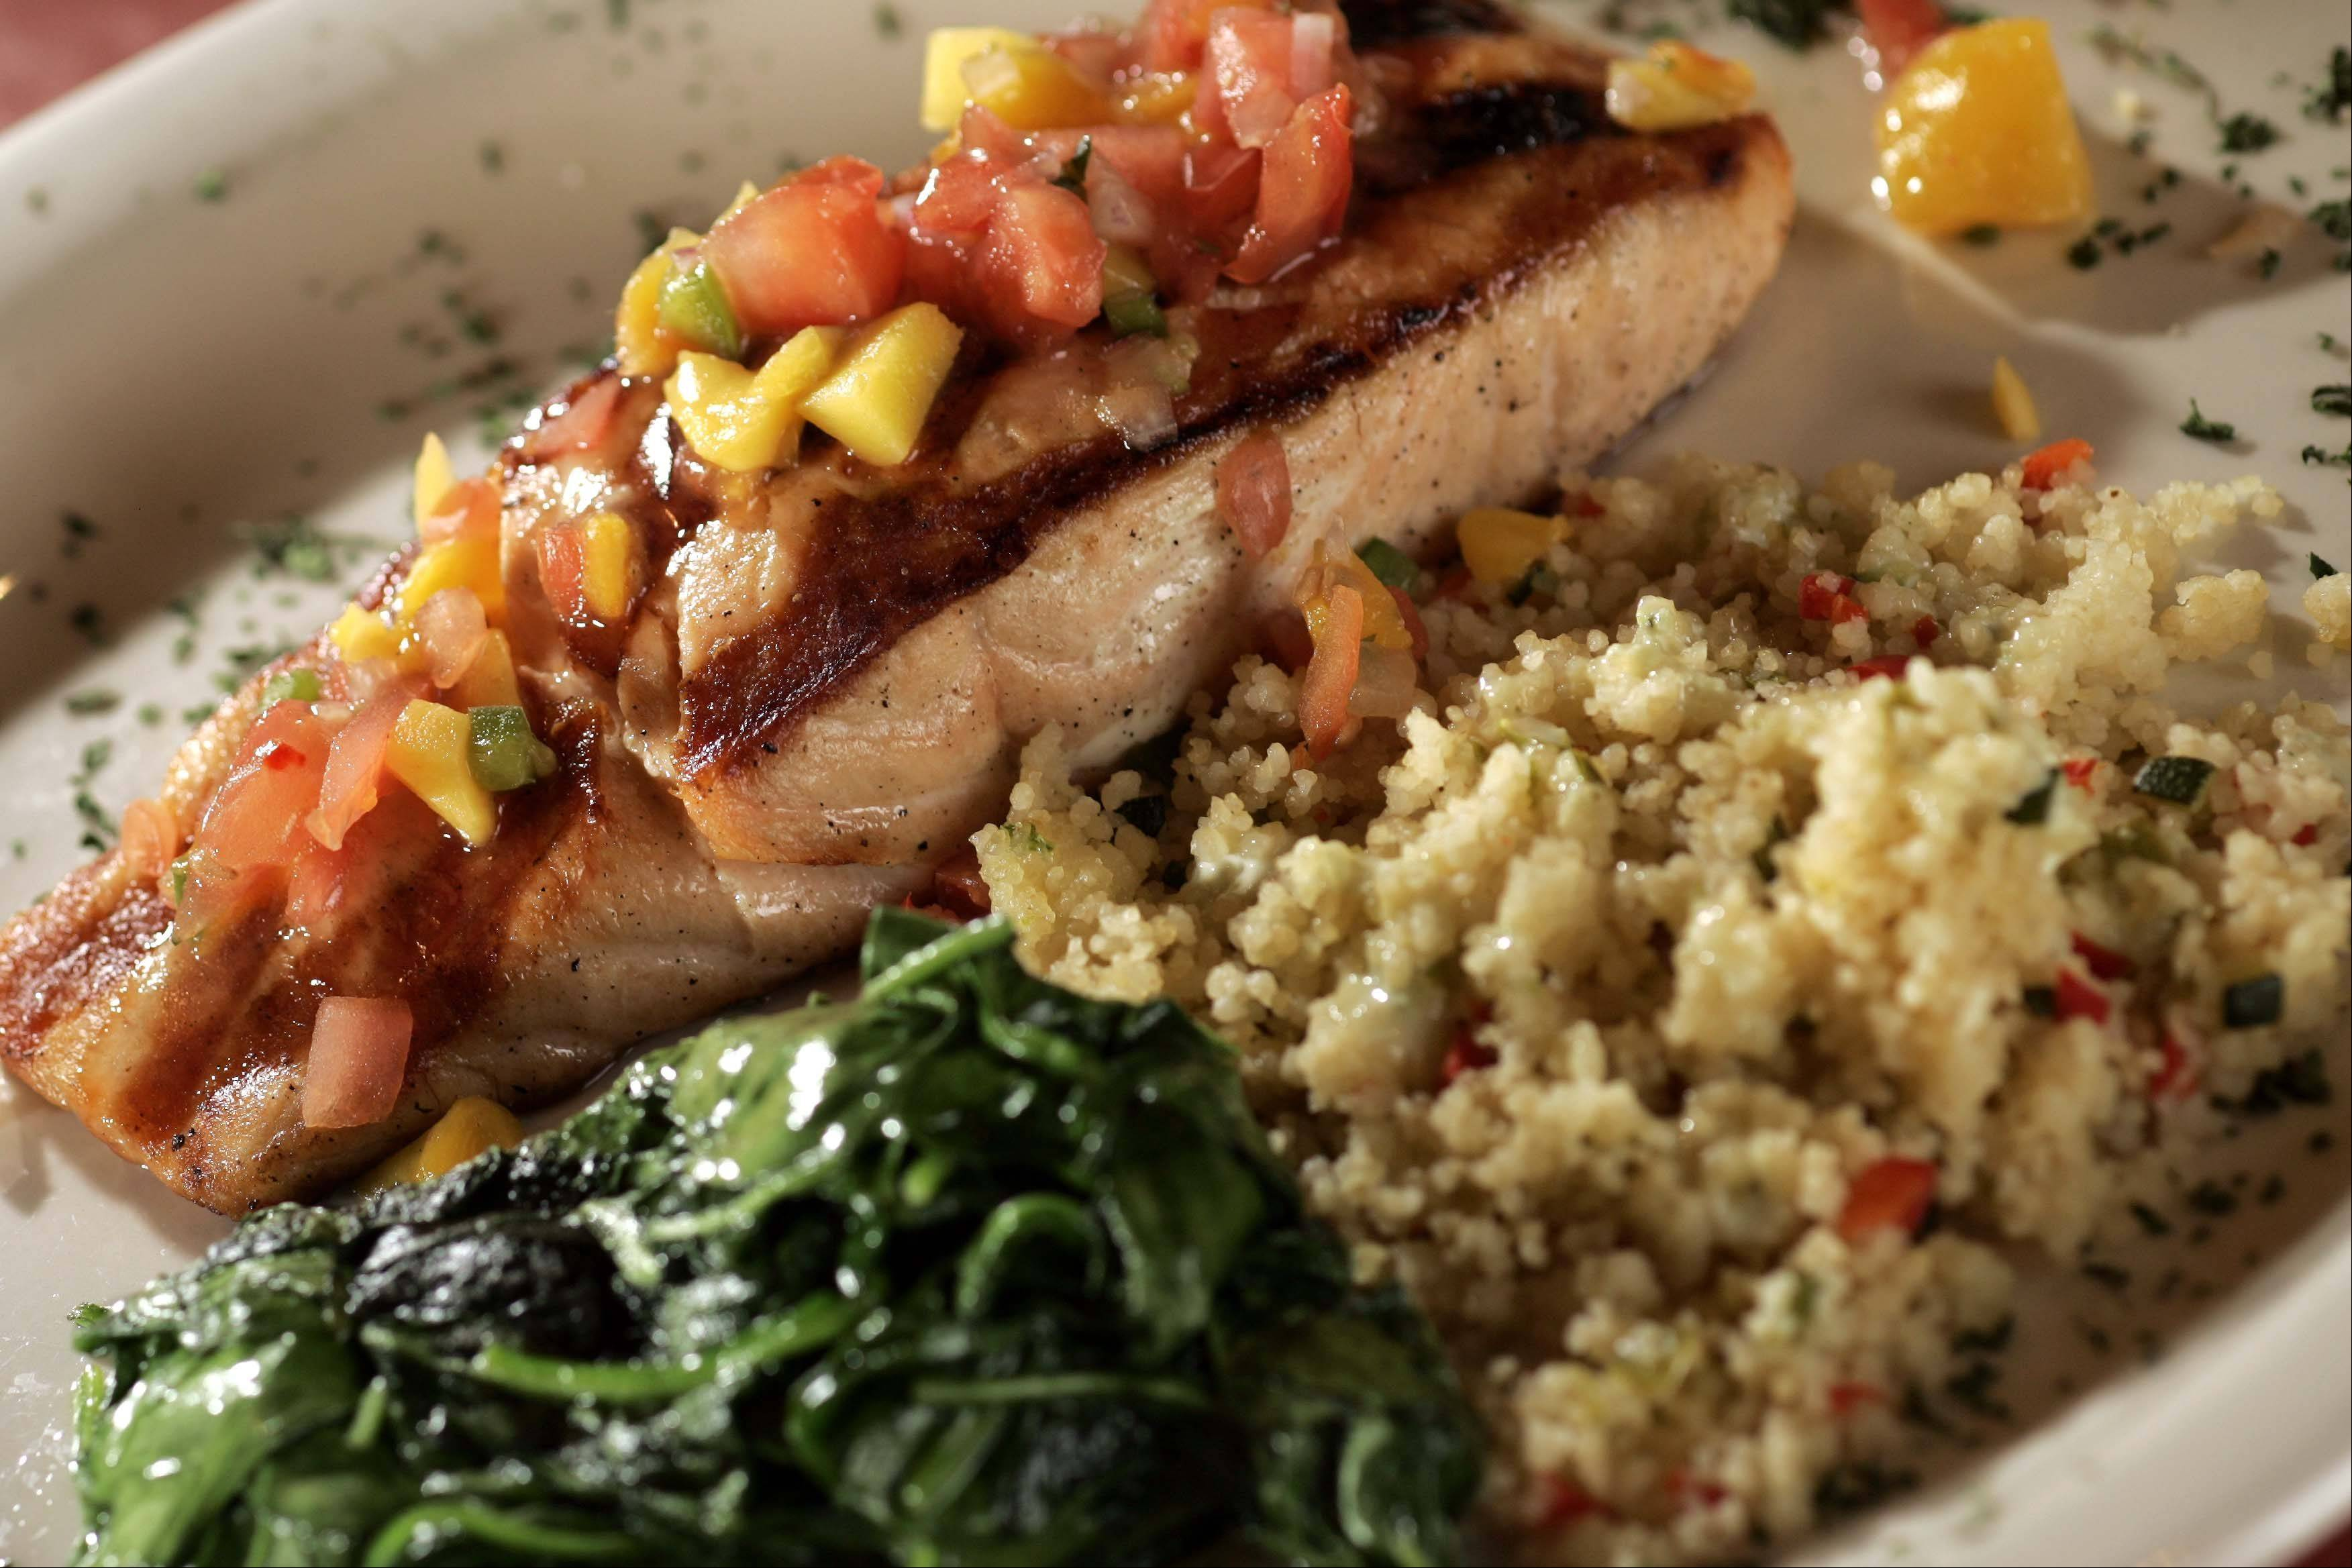 Salmon topped with mango jalapeño salsa comes with well-prepared sides of spinach and quinoa at West End in West Dundee.